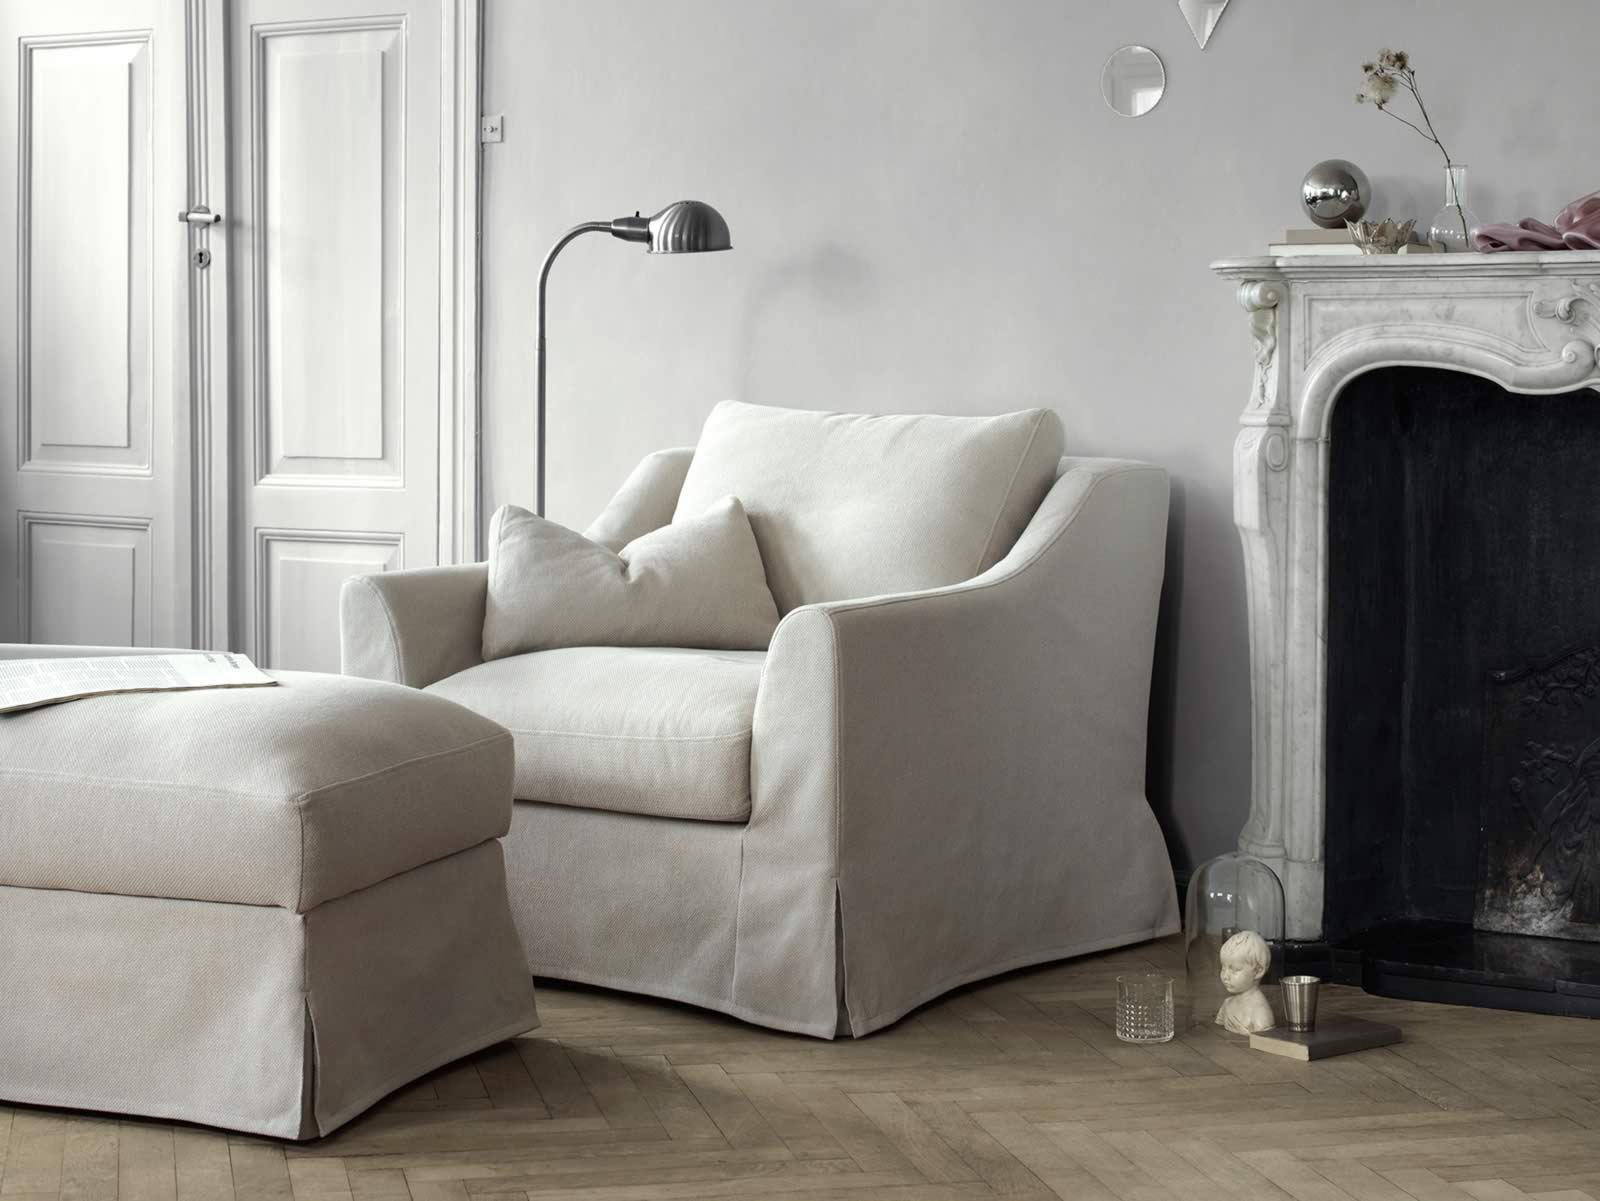 Reviewing the New IKEA FÄRLÖV Sofa Series - Back to Basics